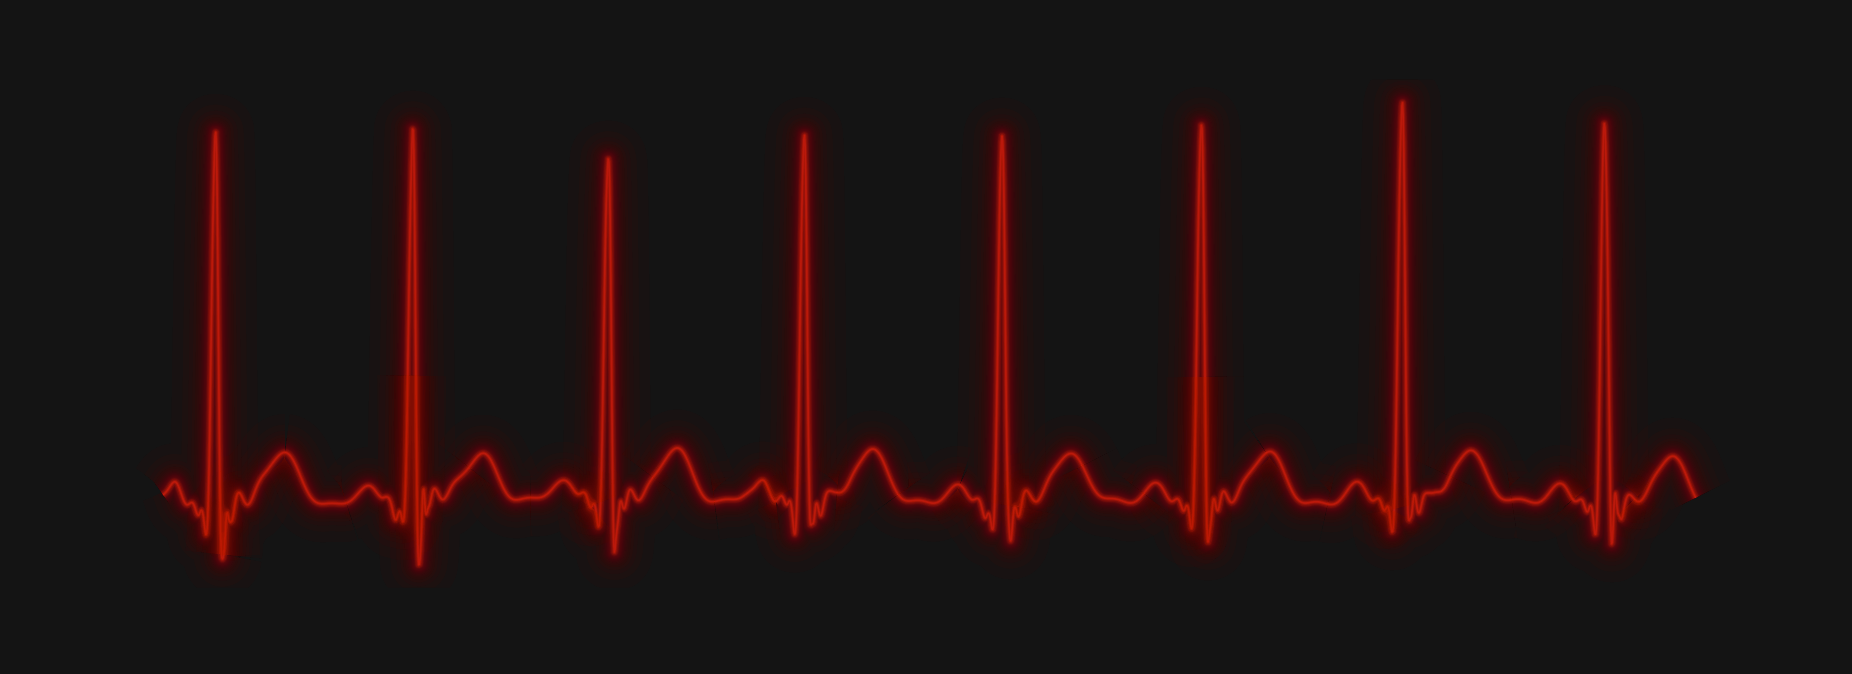 Extracting Heart Rate Data (Two Ways!) from Apple Health XML Export Files Using R (a.k.a. The Least Romantic Valentine's Day R Post Ever)